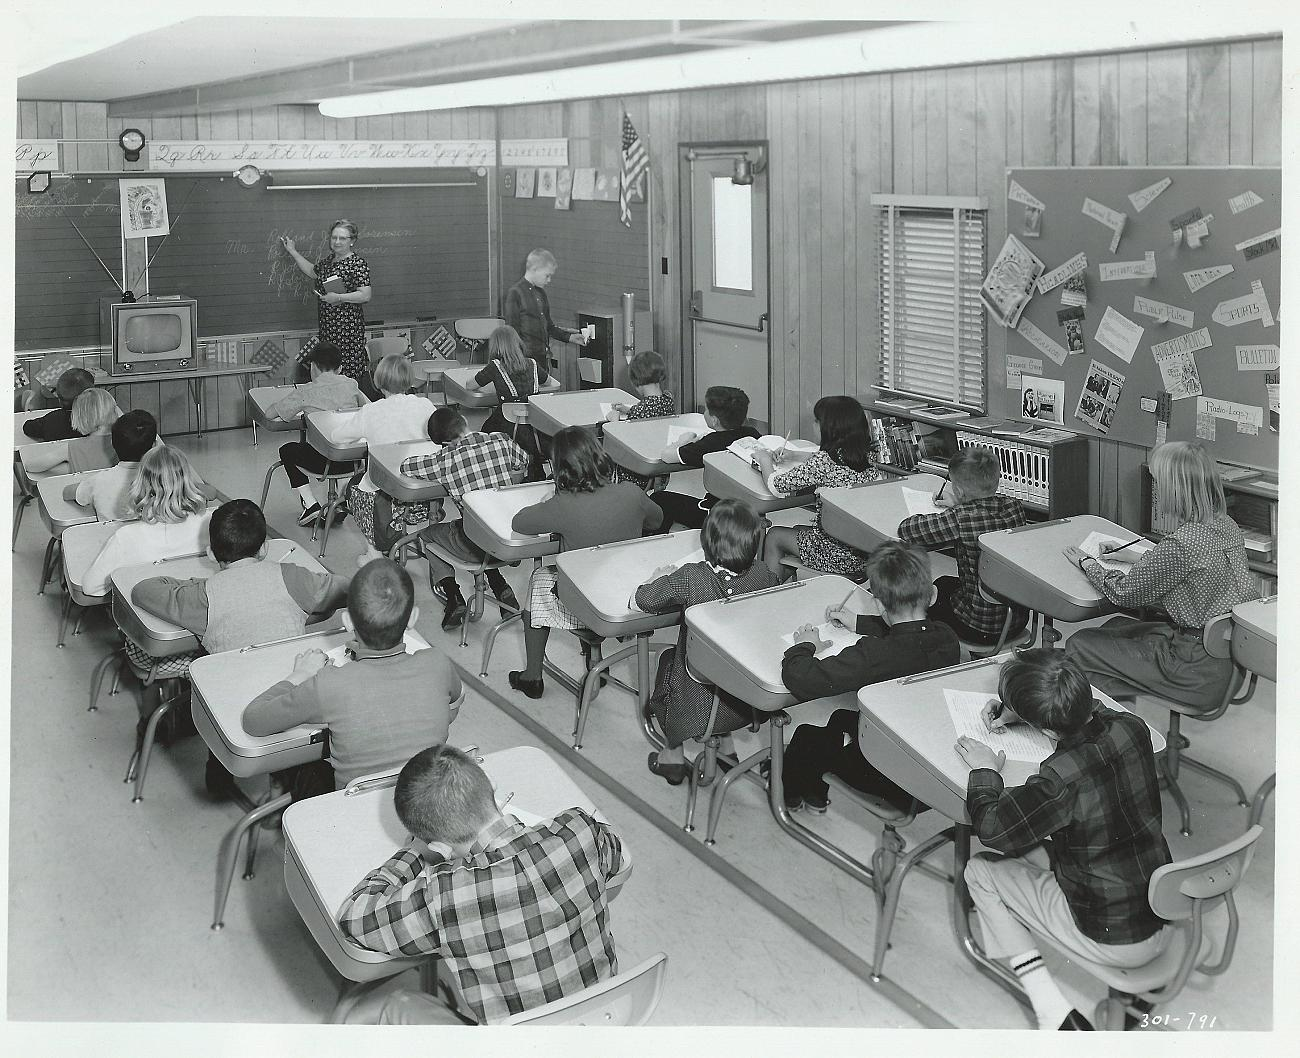 This advertisement for the Glenwood Inglewood Water Company from the 1950's shows a modern classroom with a television and, more importantly, a water cooler.